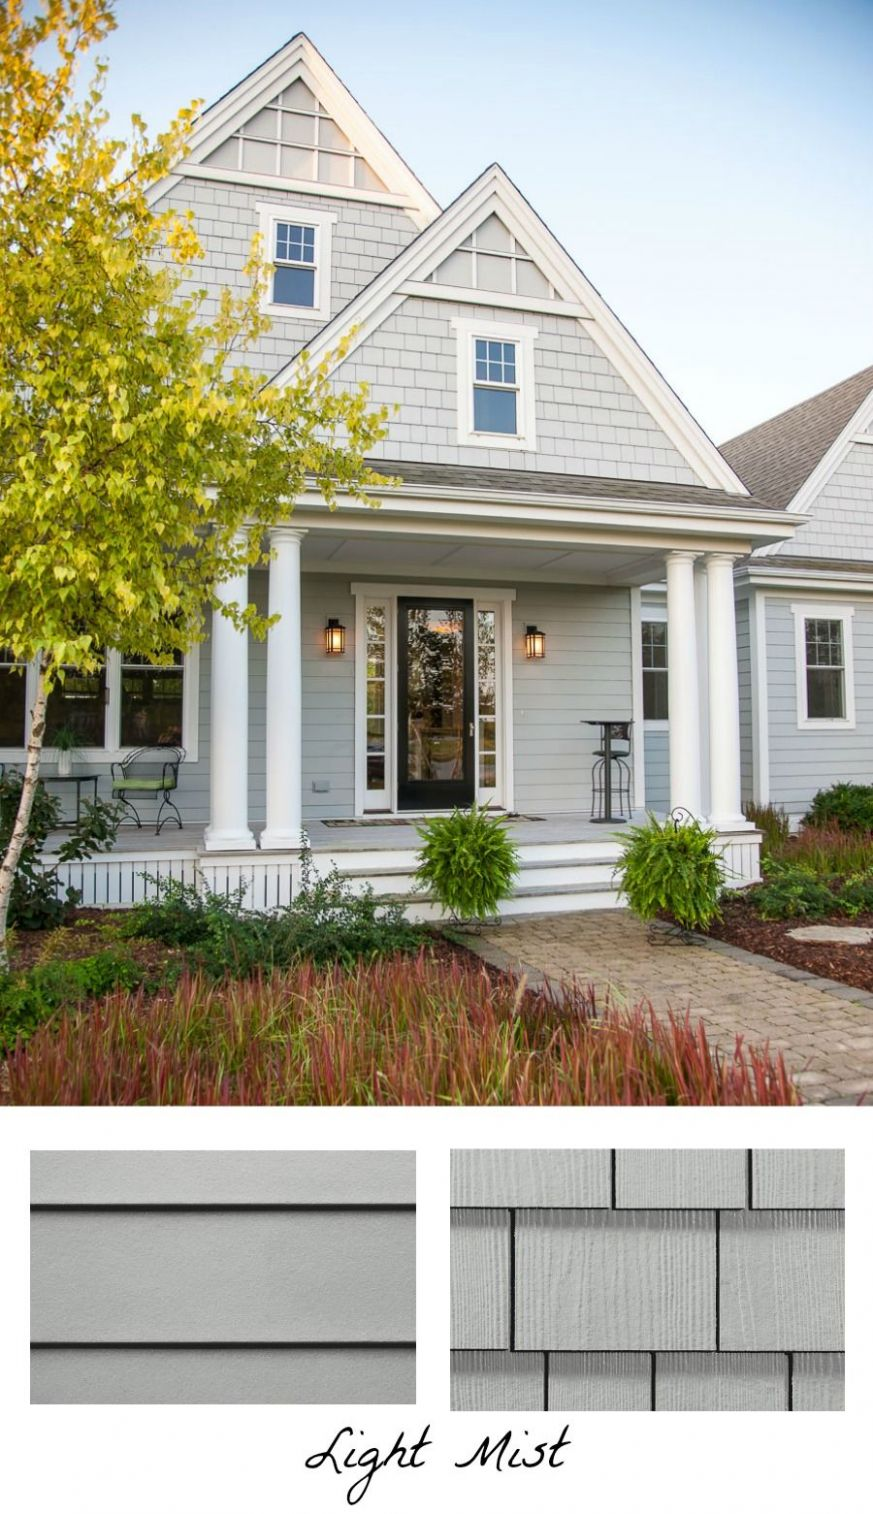 Exterior Inspiration: Favorite Home Design & Color Ideas! | House ...